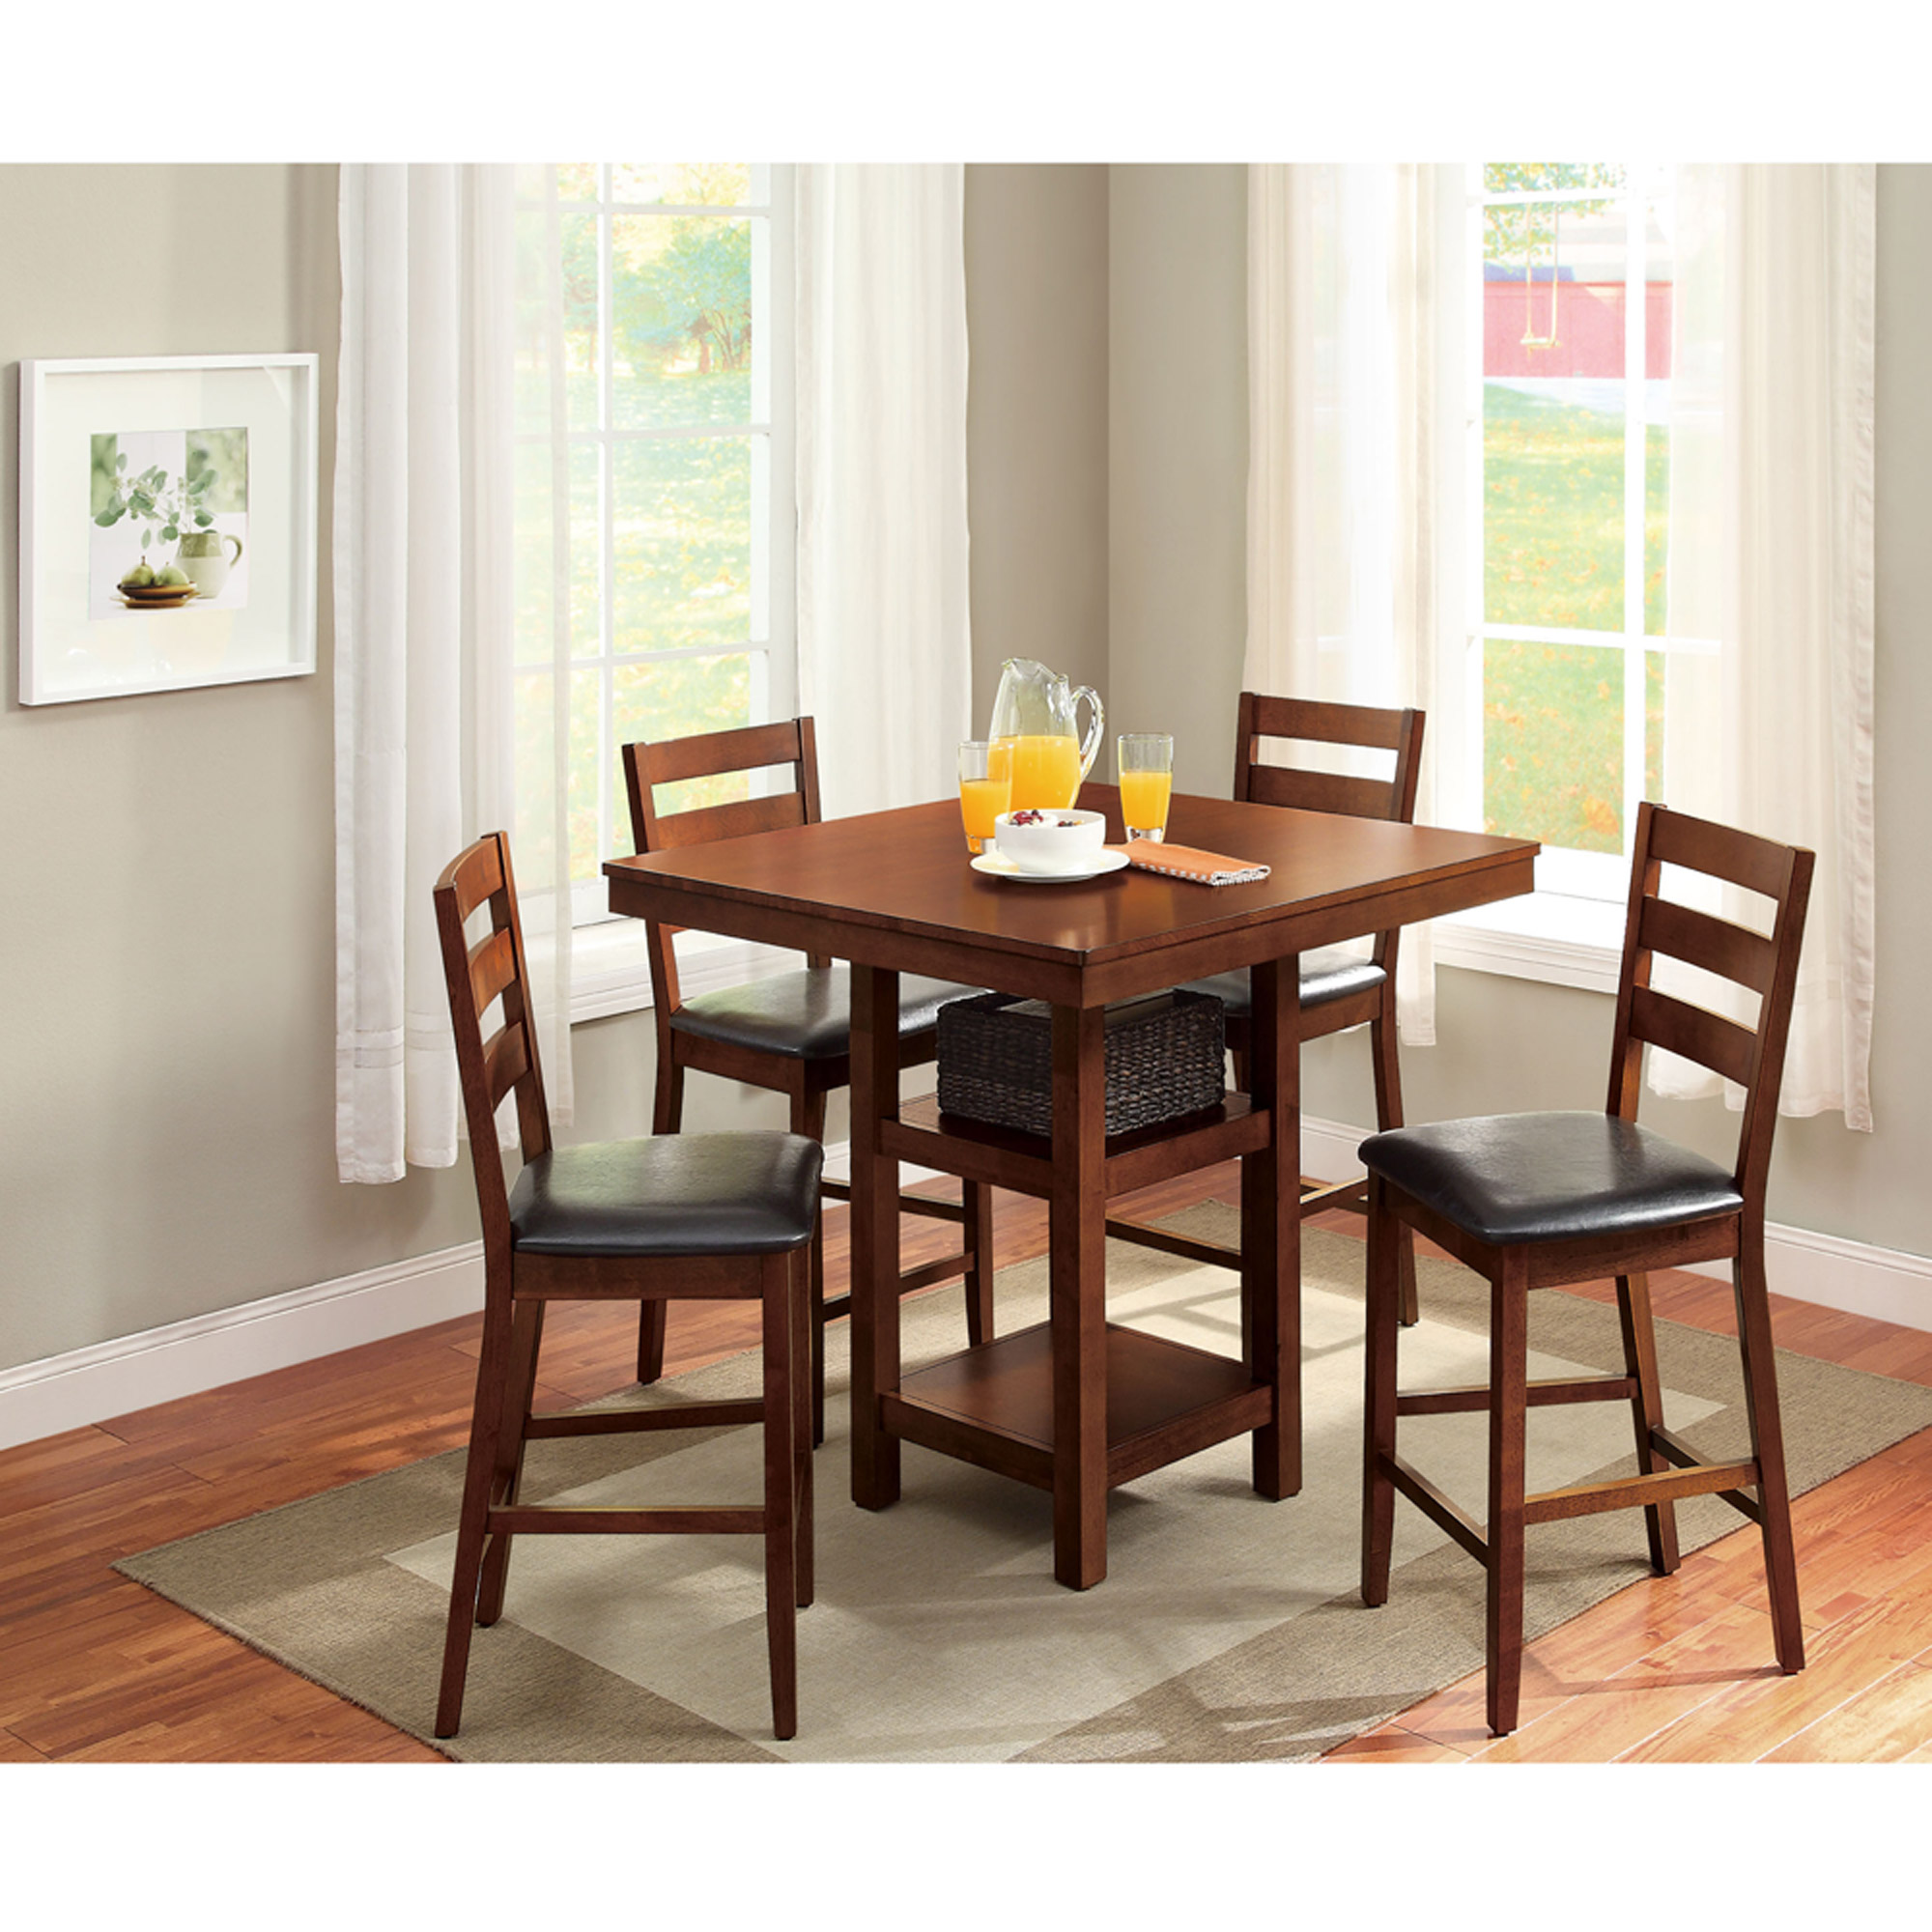 counter high dining chairs